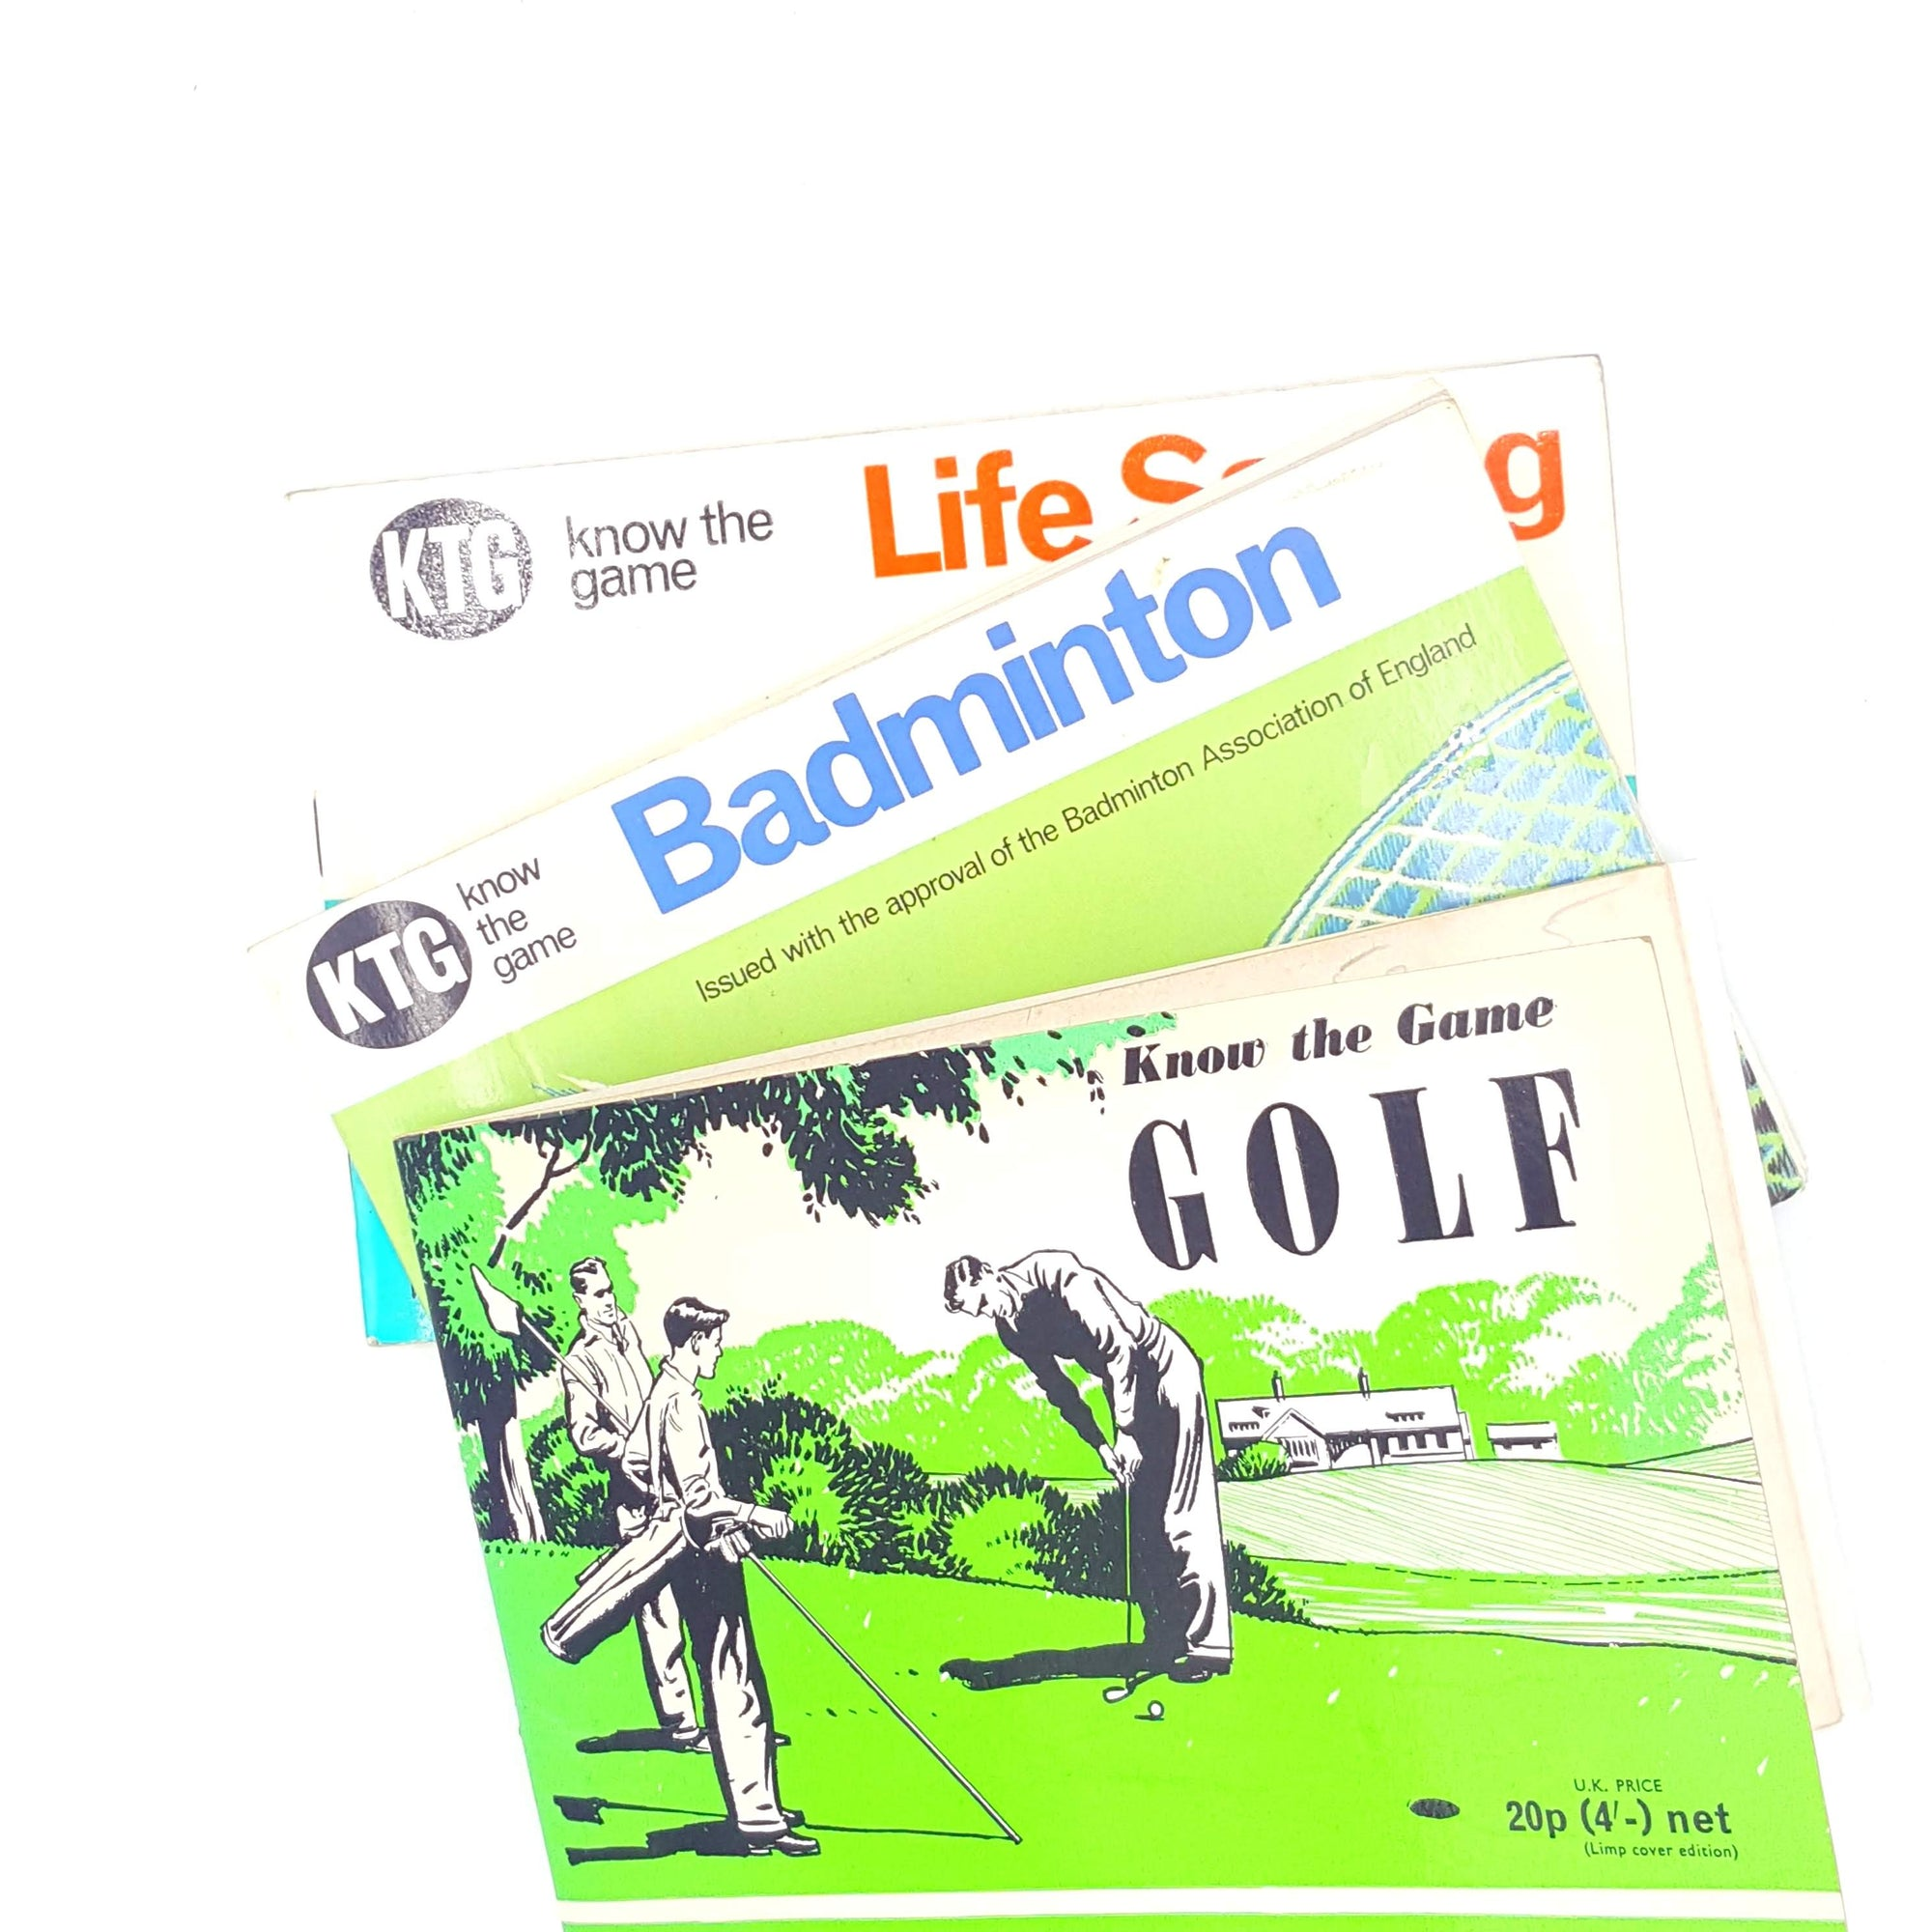 old-know-the-game-country-house-library-thrift-books-vintage-patterned-golf-badminton-decorative-classic-sport-life-saving-antique-